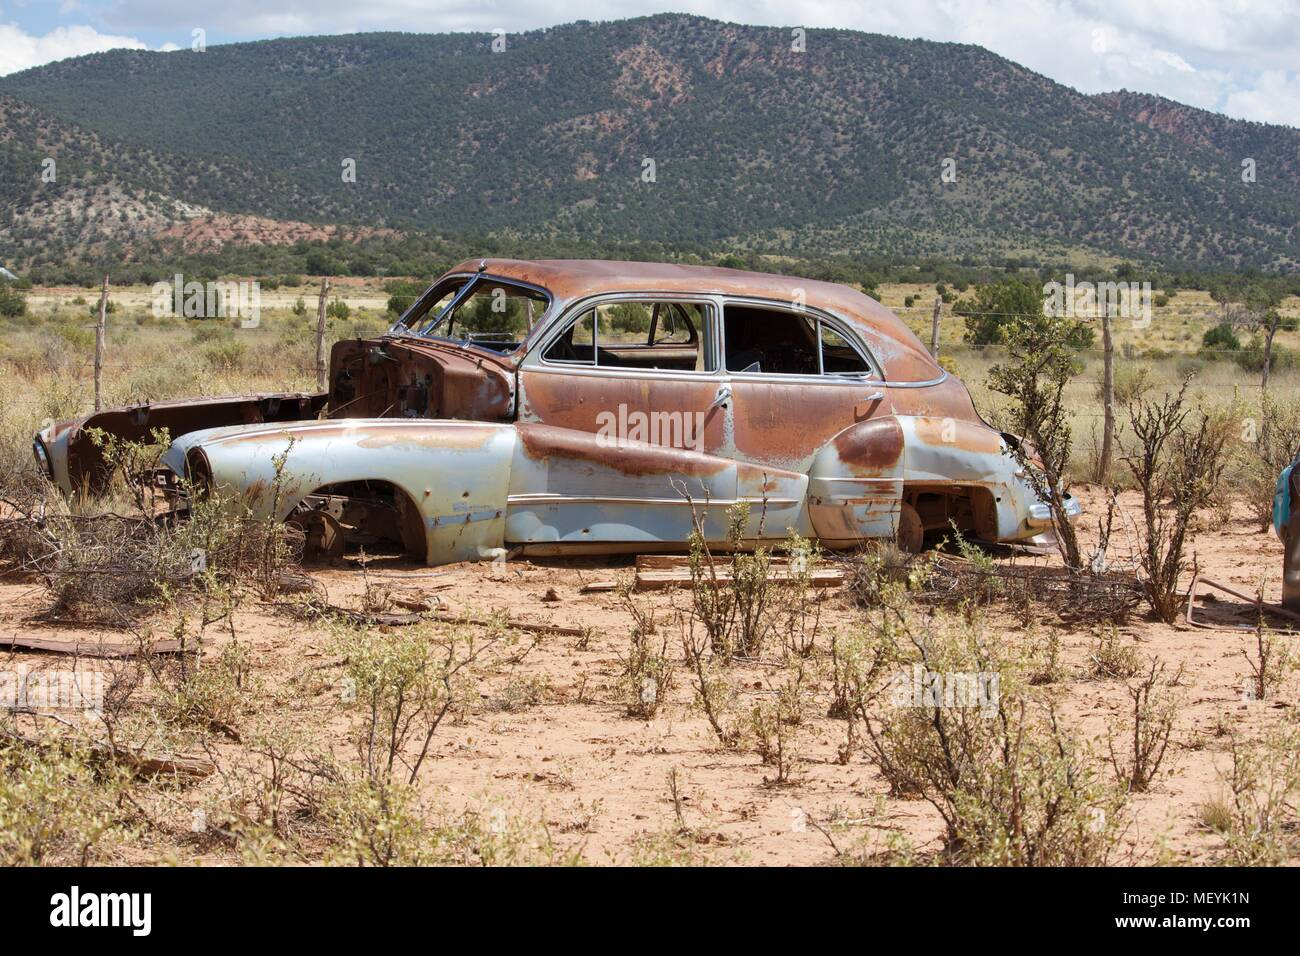 Abandoned rusty car in the desert surrounded by thin bushes. Gran Canyon National Park, USA - Stock Image